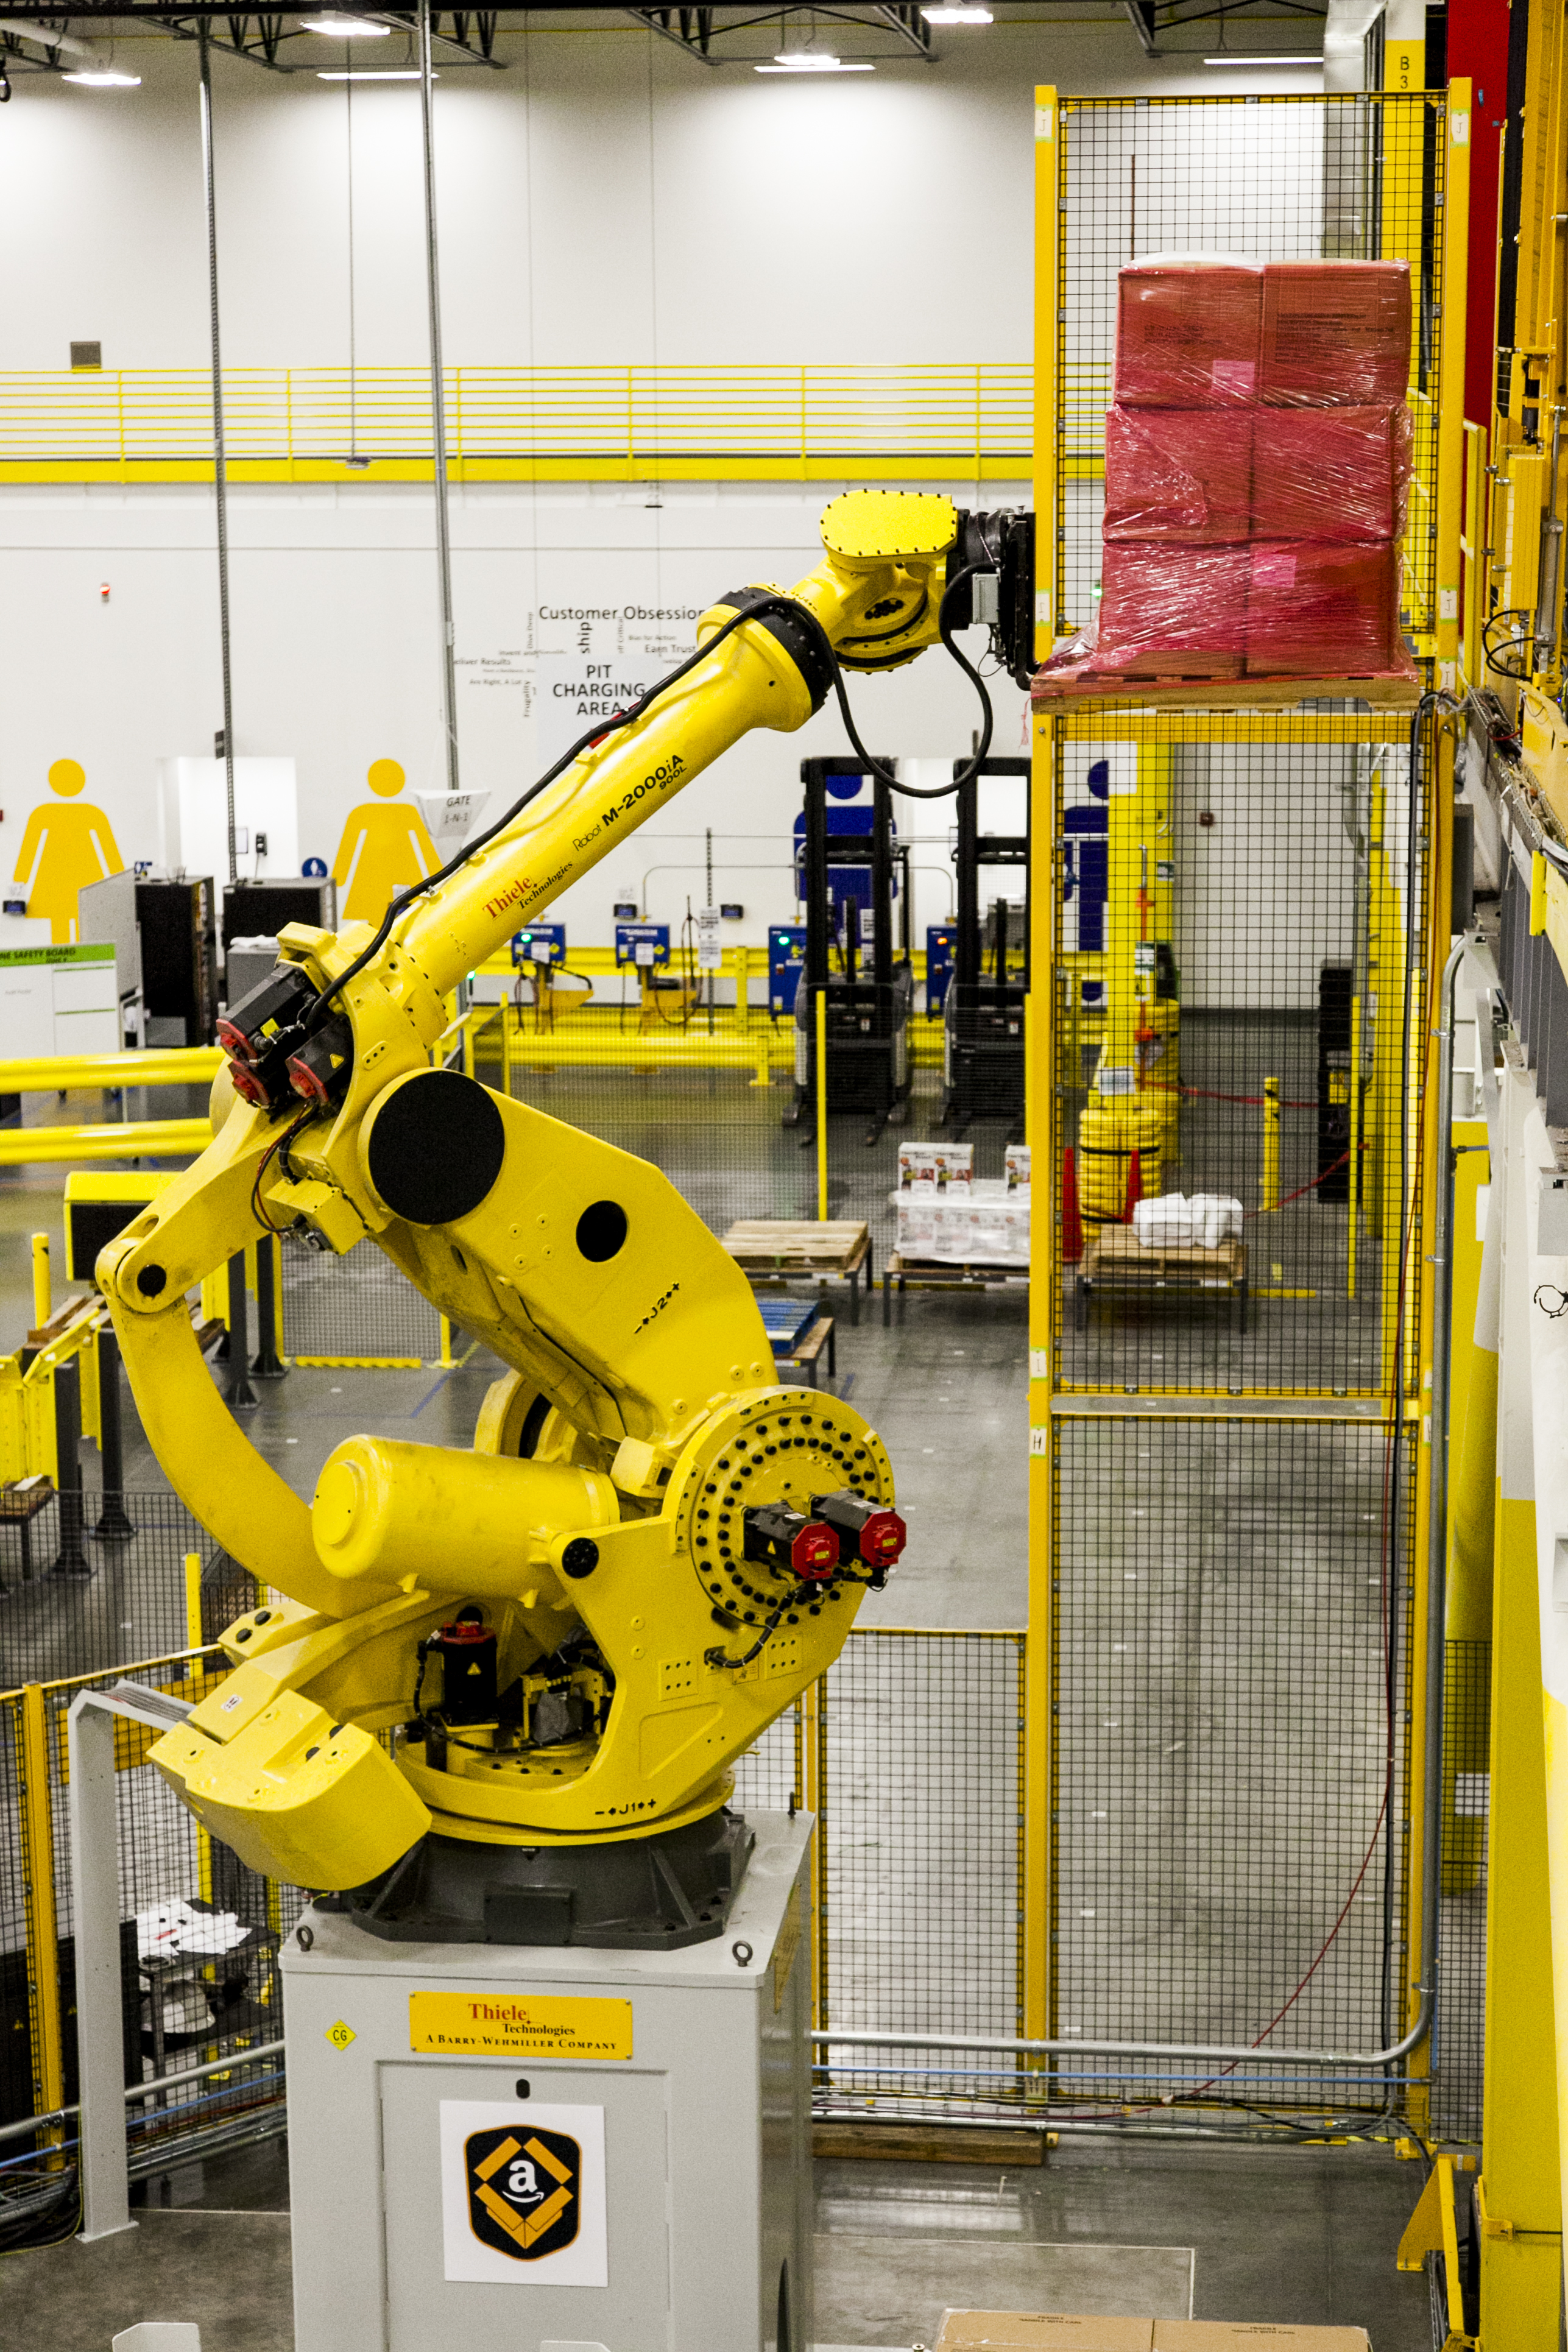 Amazon's Robo-Stow, one of Earth's largest robotic arms moving products directly to a Kiva robot in its newest generation fulfillment center. (Photo: Business Wire)